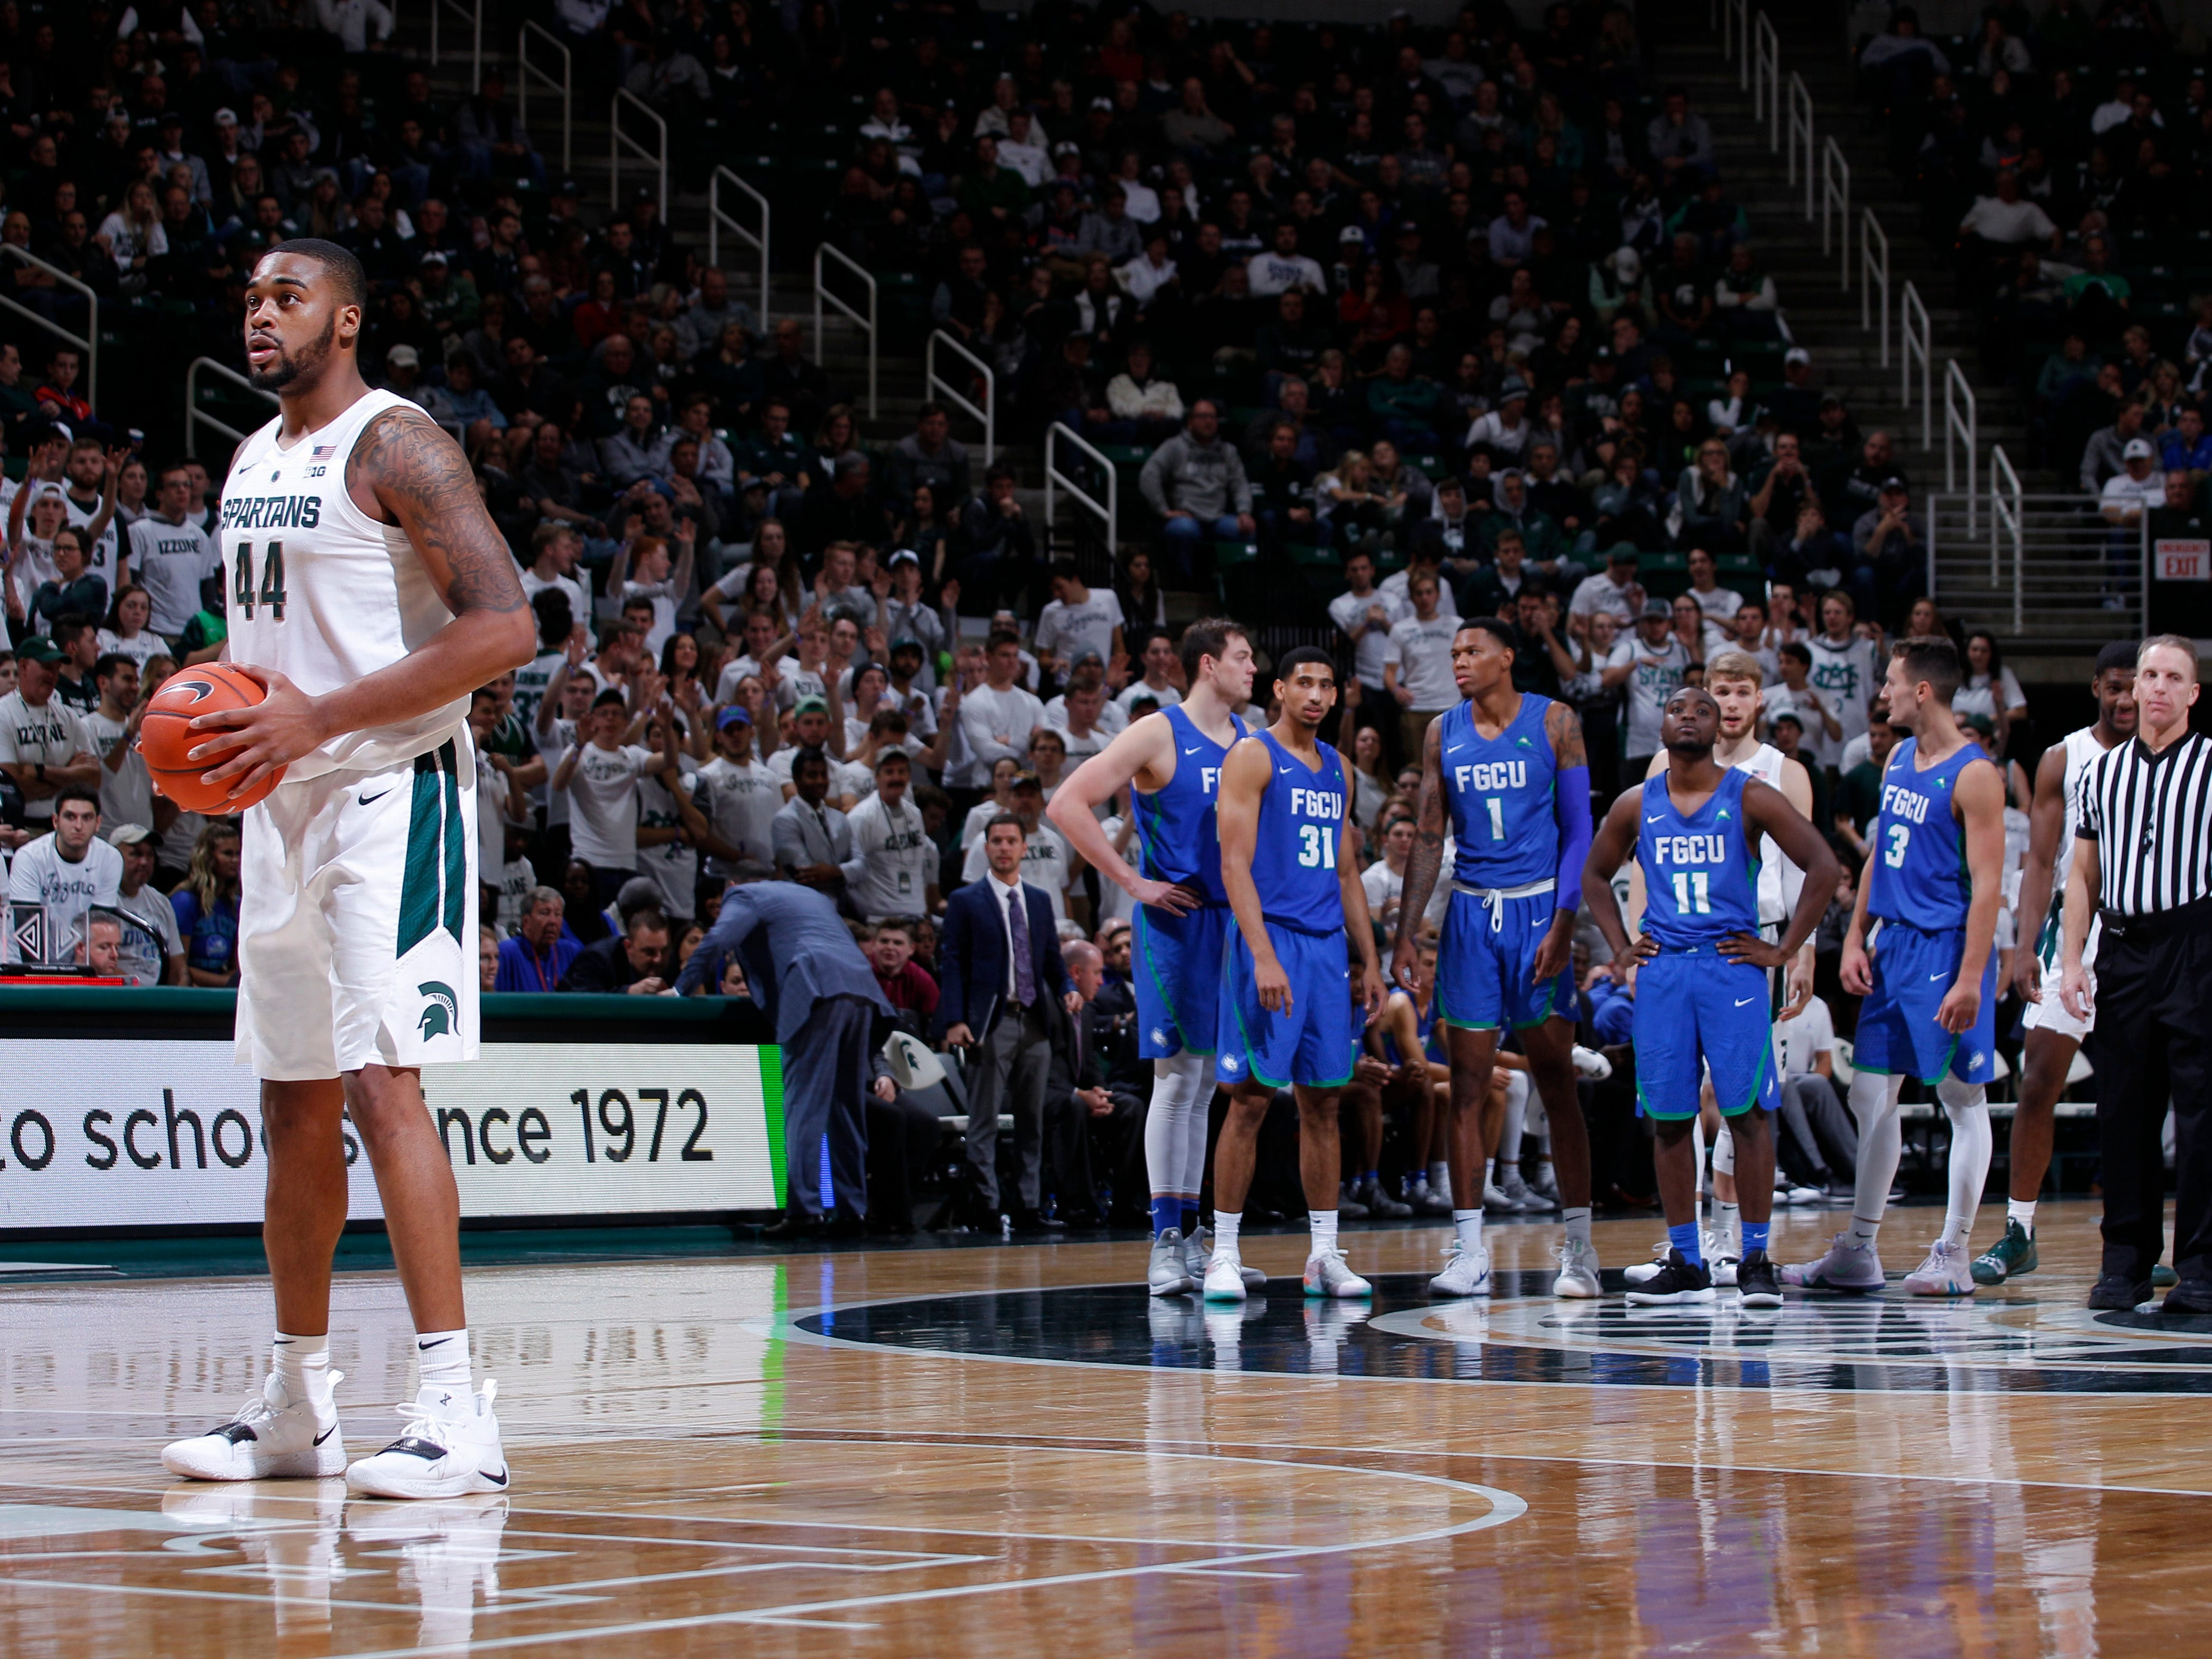 Michigan State's Nick Ward, left, prepares to shoot a free throw for a technical foul against Florida Gulf Coast during the second half Sunday night at Breslin Center.